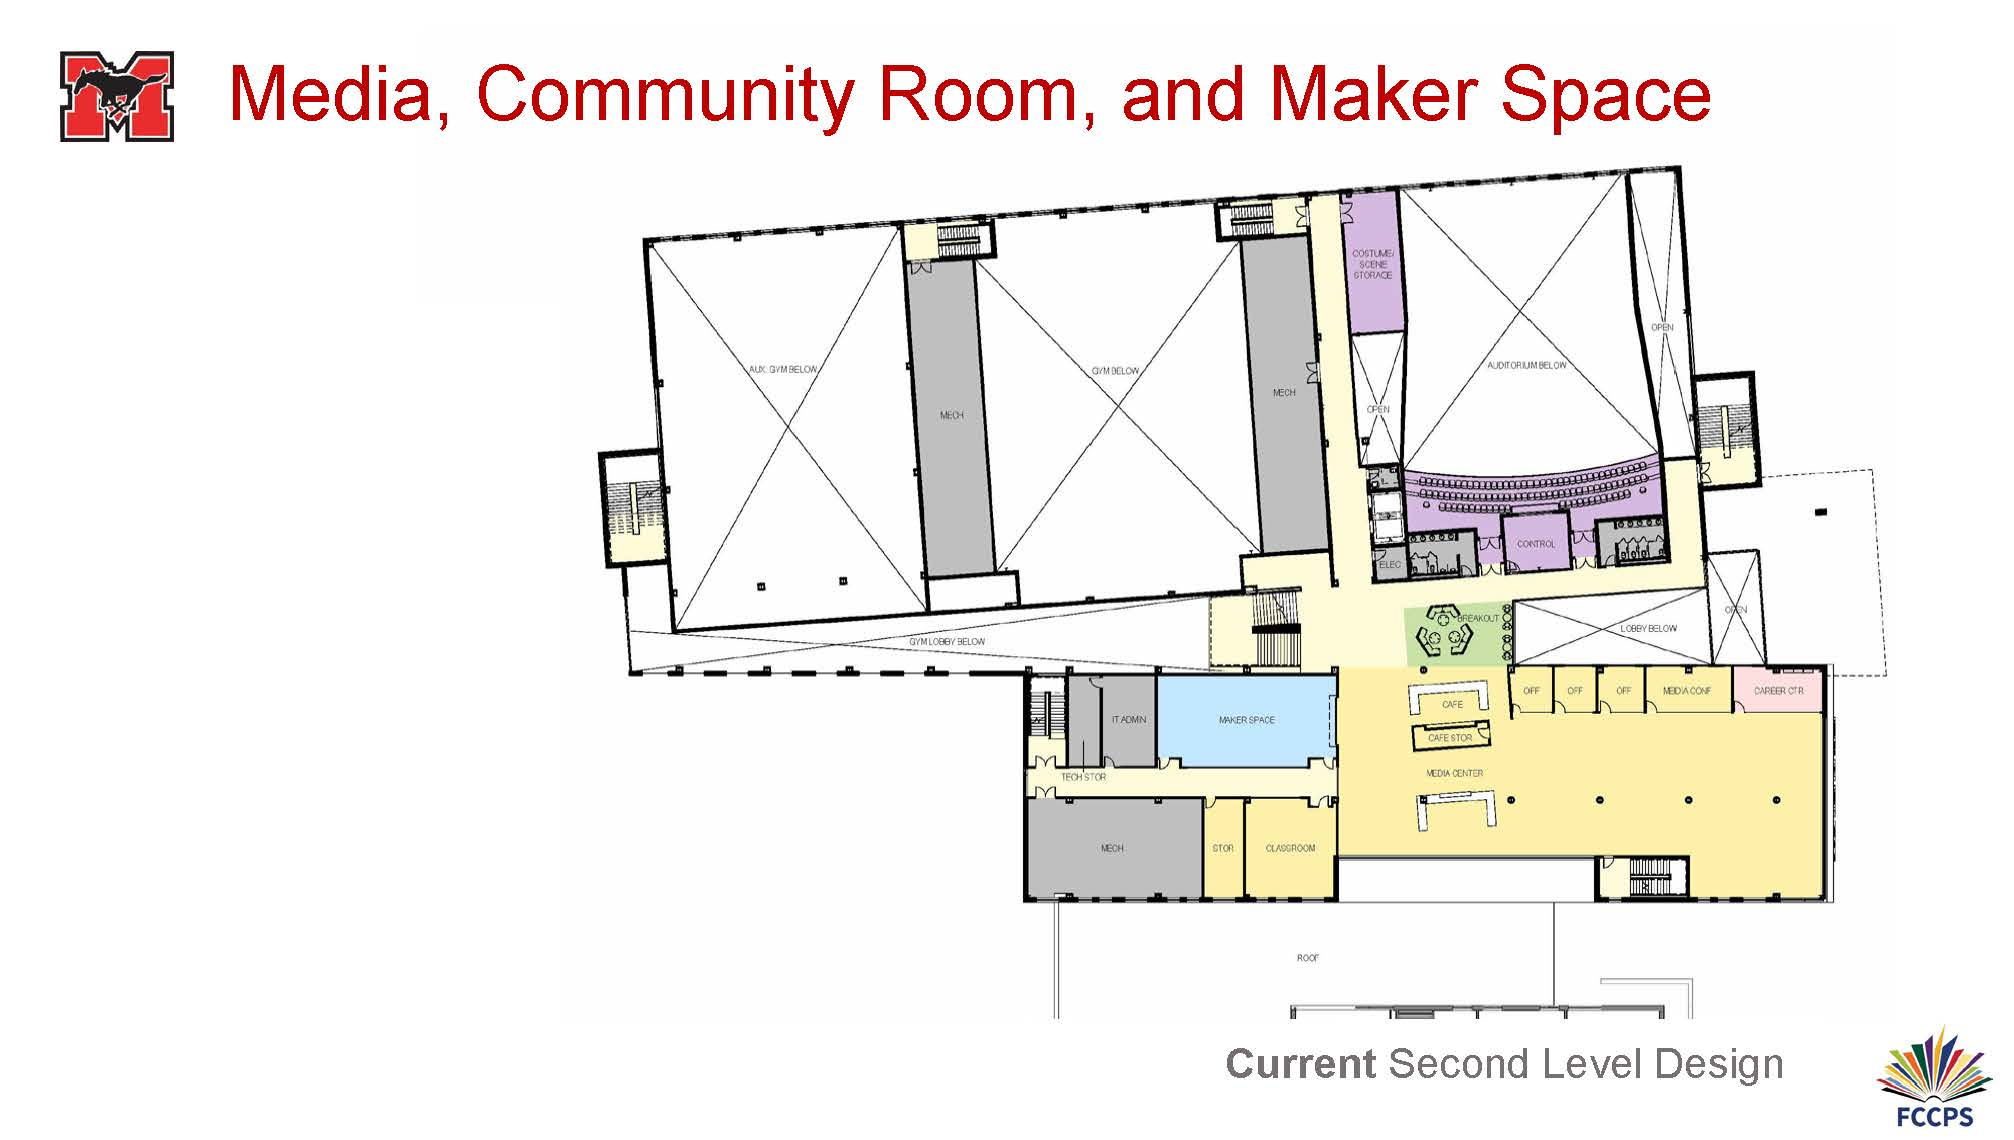 Media, Community Room, and Maker Space